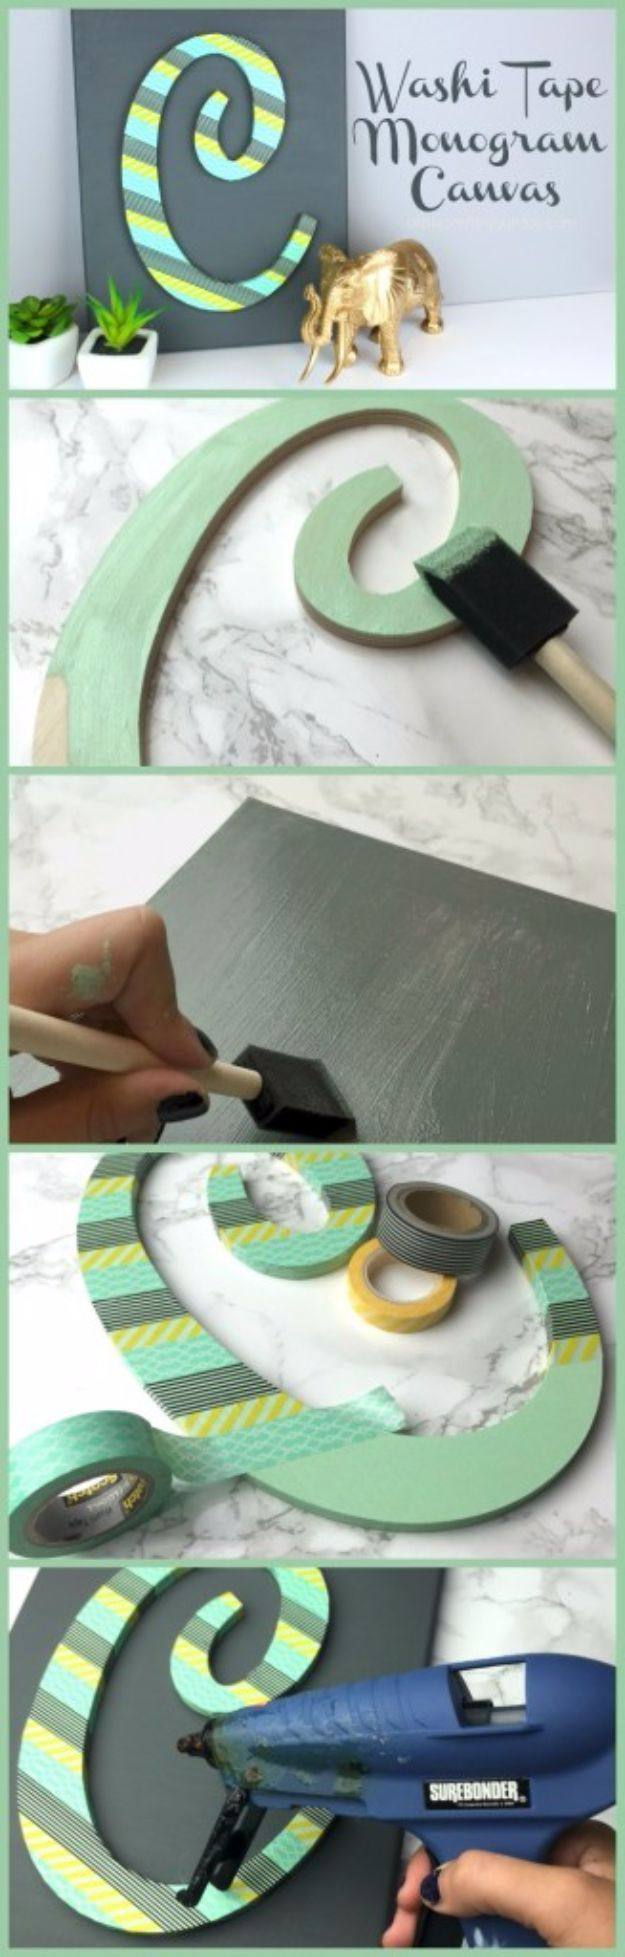 DIY Wall Letters and Word Signs - Washi Tape Monogram Canvas - Initials Wall Art for Creative Home Decor Ideas - Cool Architectural Letter Projects and Wall Art Tutorials for Living Room Decor, Bedroom Ideas. Girl or Boy Nursery. Paint, Glitter, String Art, Easy Cardboard and Rustic Wooden Ideas - DIY Projects and Crafts by DIY JOY #diysigns #diyideas #diyhomedecor